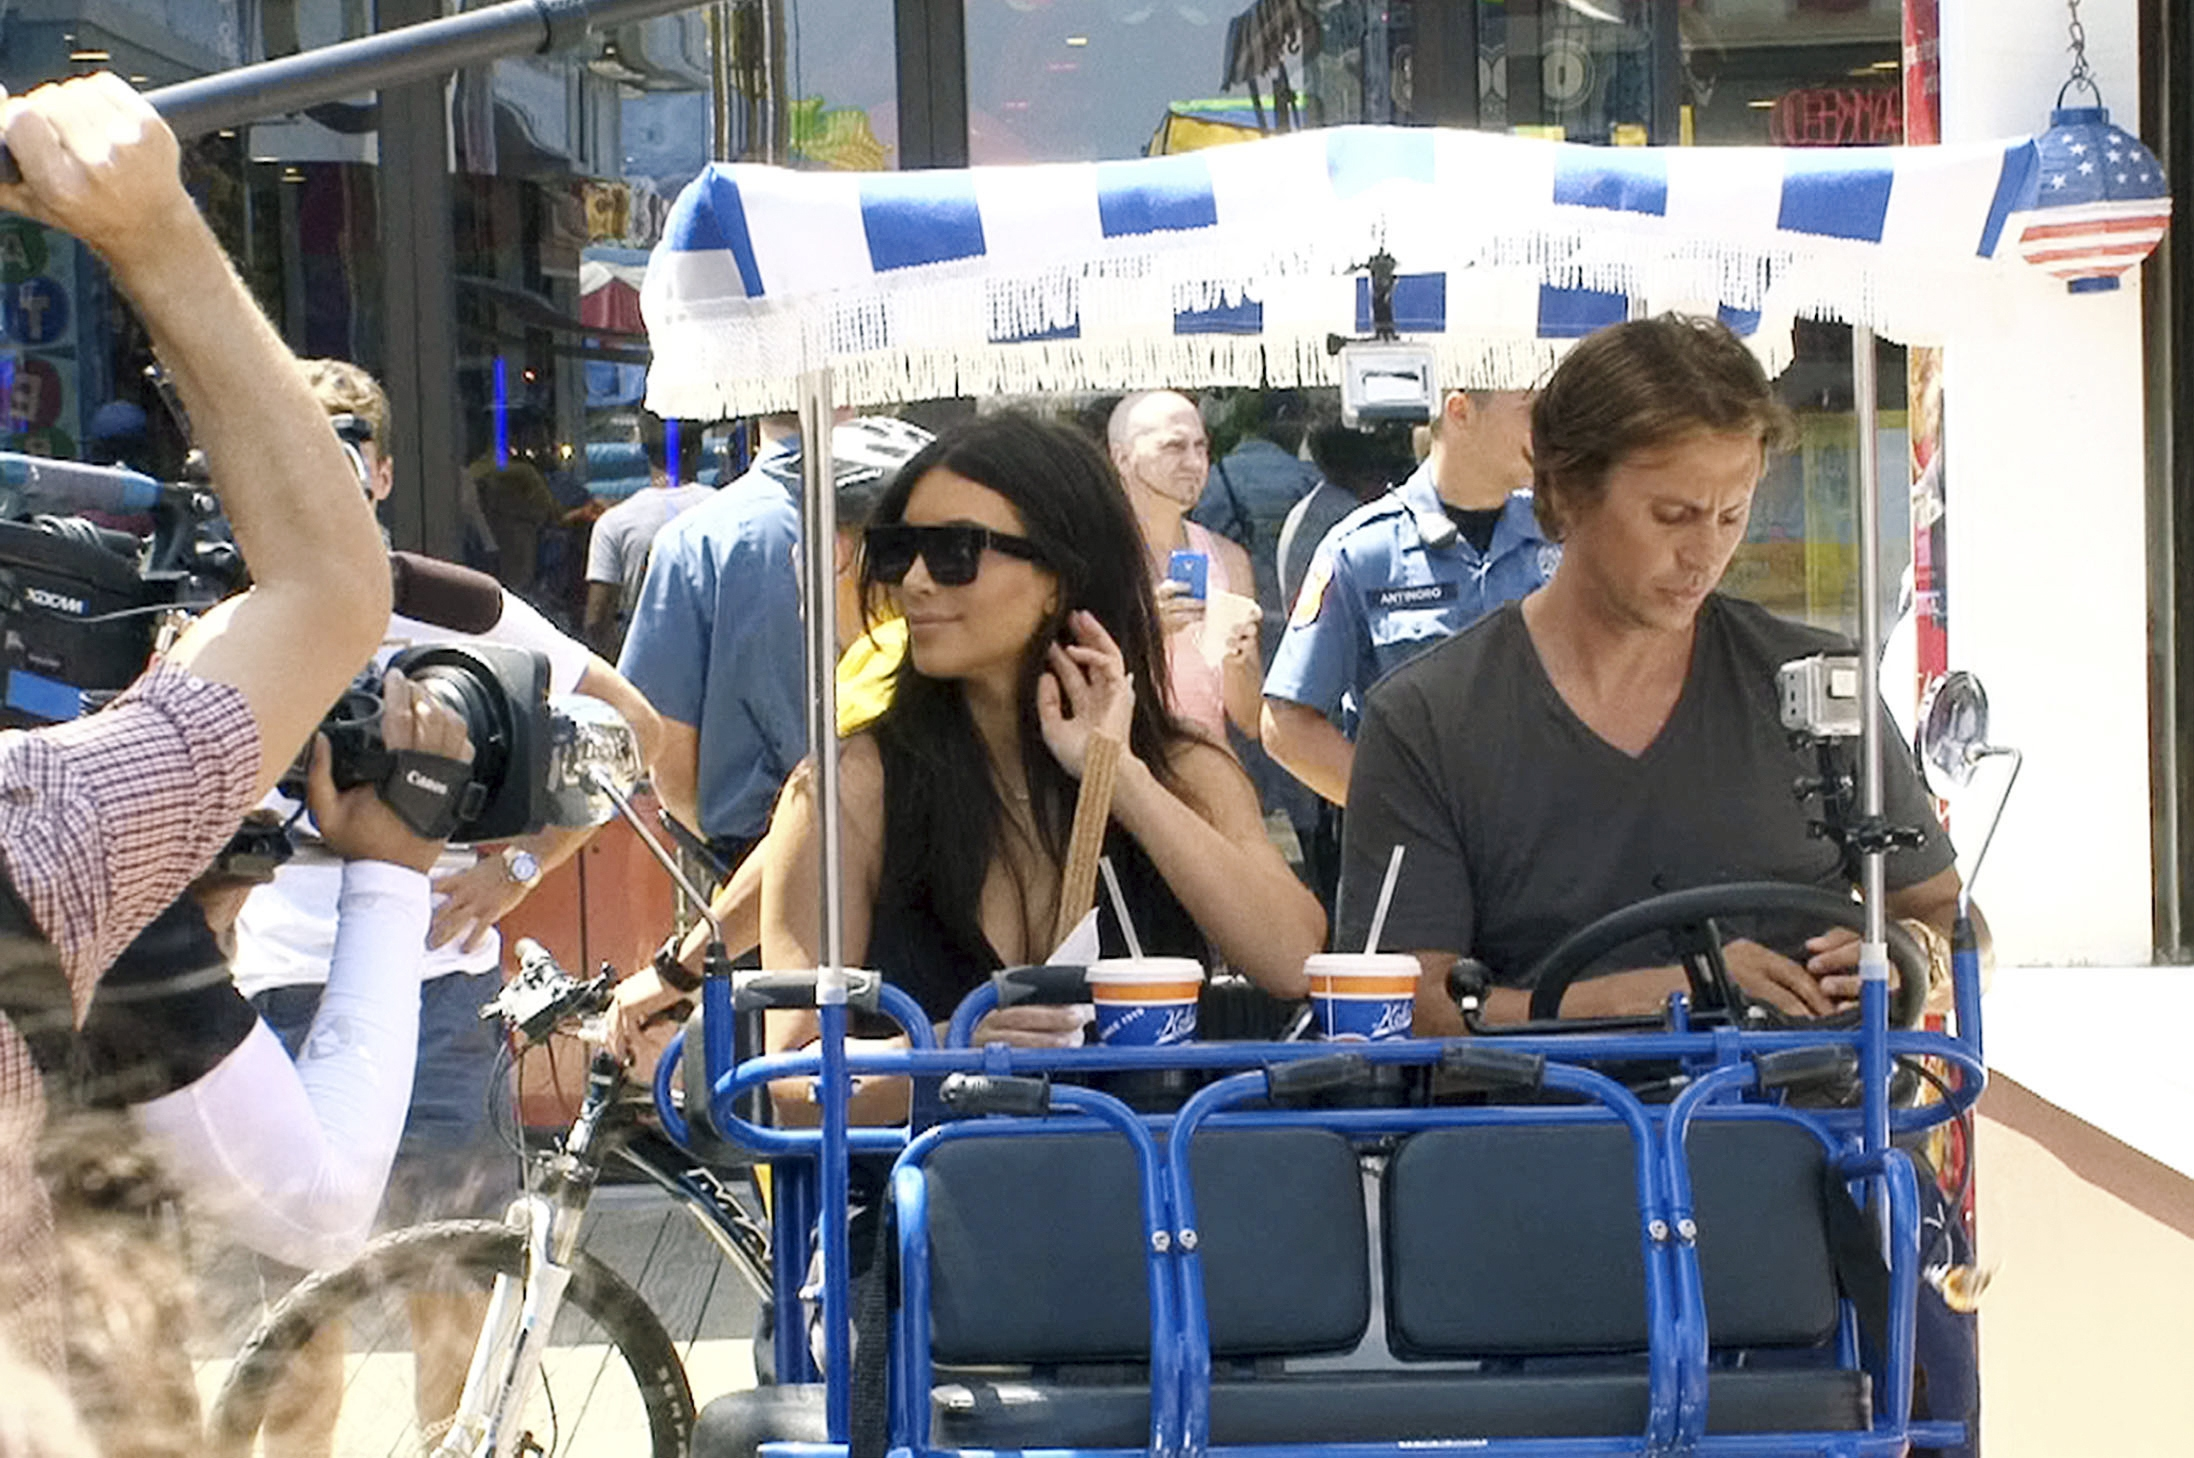 Kim Kardashian and her friend and publicist Jonathan Cheban ride a surrey on the Seaside Heights, N.J., boardwalk Tuesday.